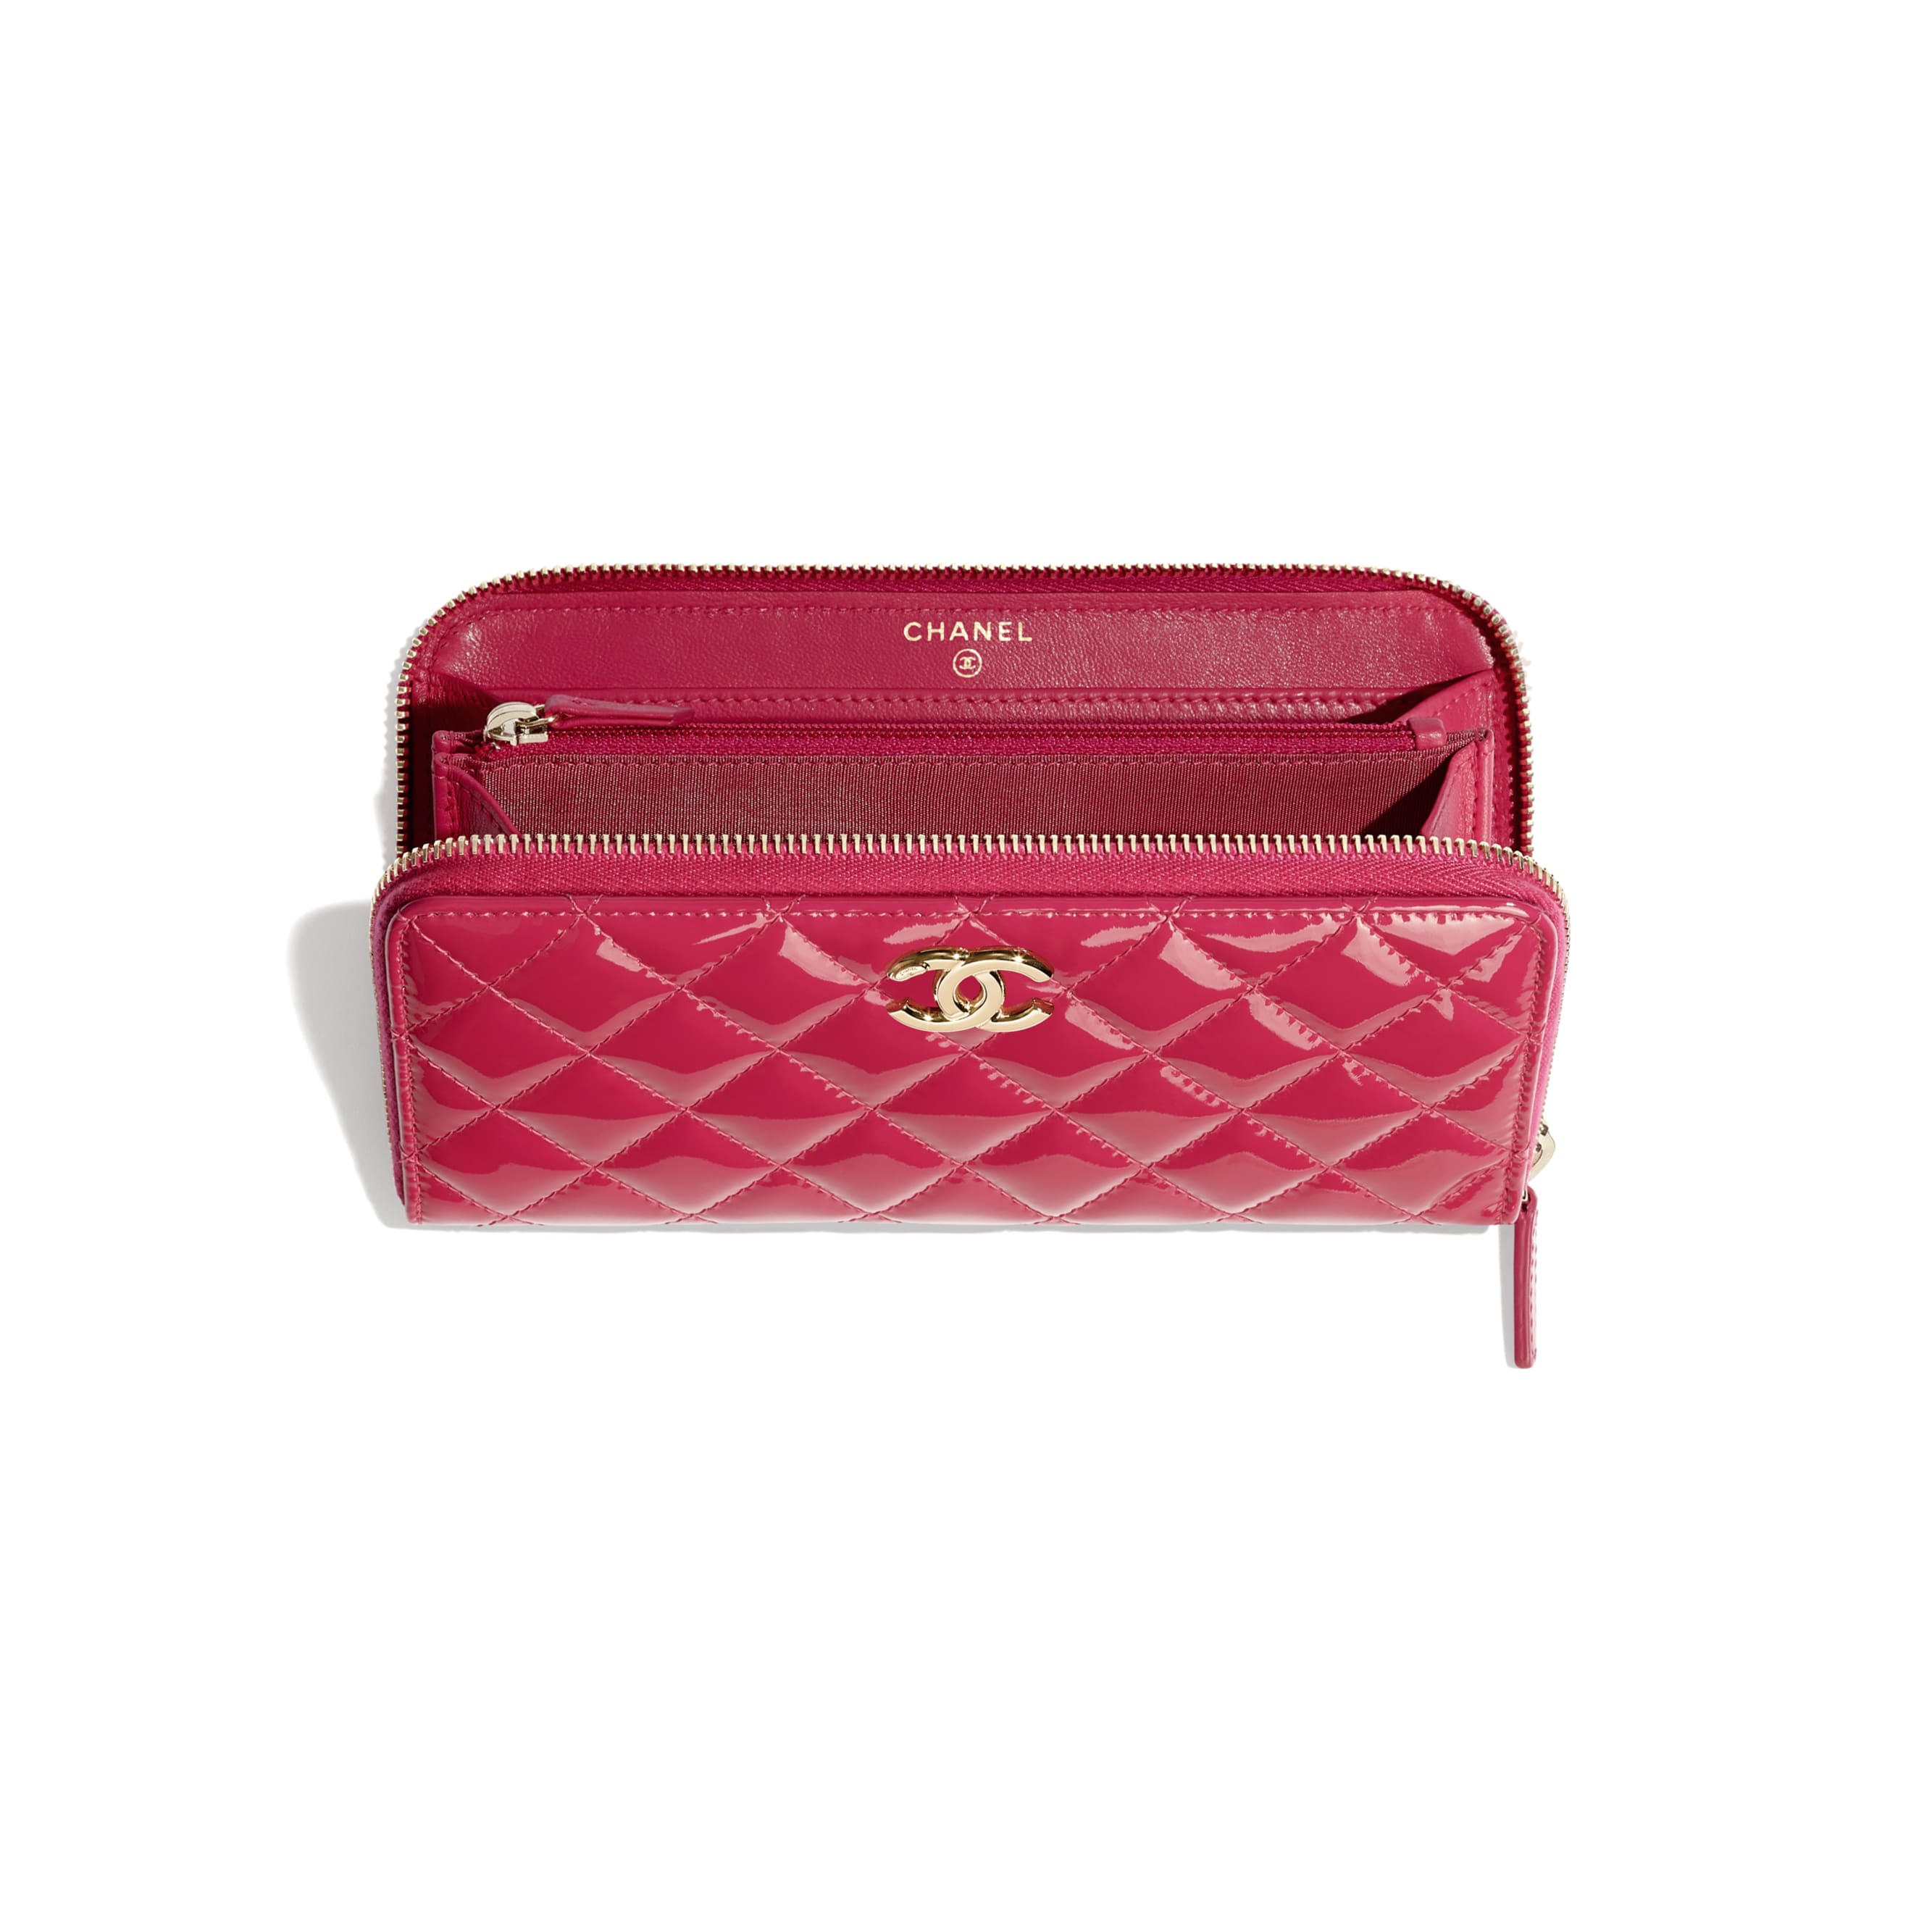 Long Zipped Wallet - Pink - Patent Calfskin, Lambskin & Gold-Tone Metal - CHANEL - Other view - see standard sized version